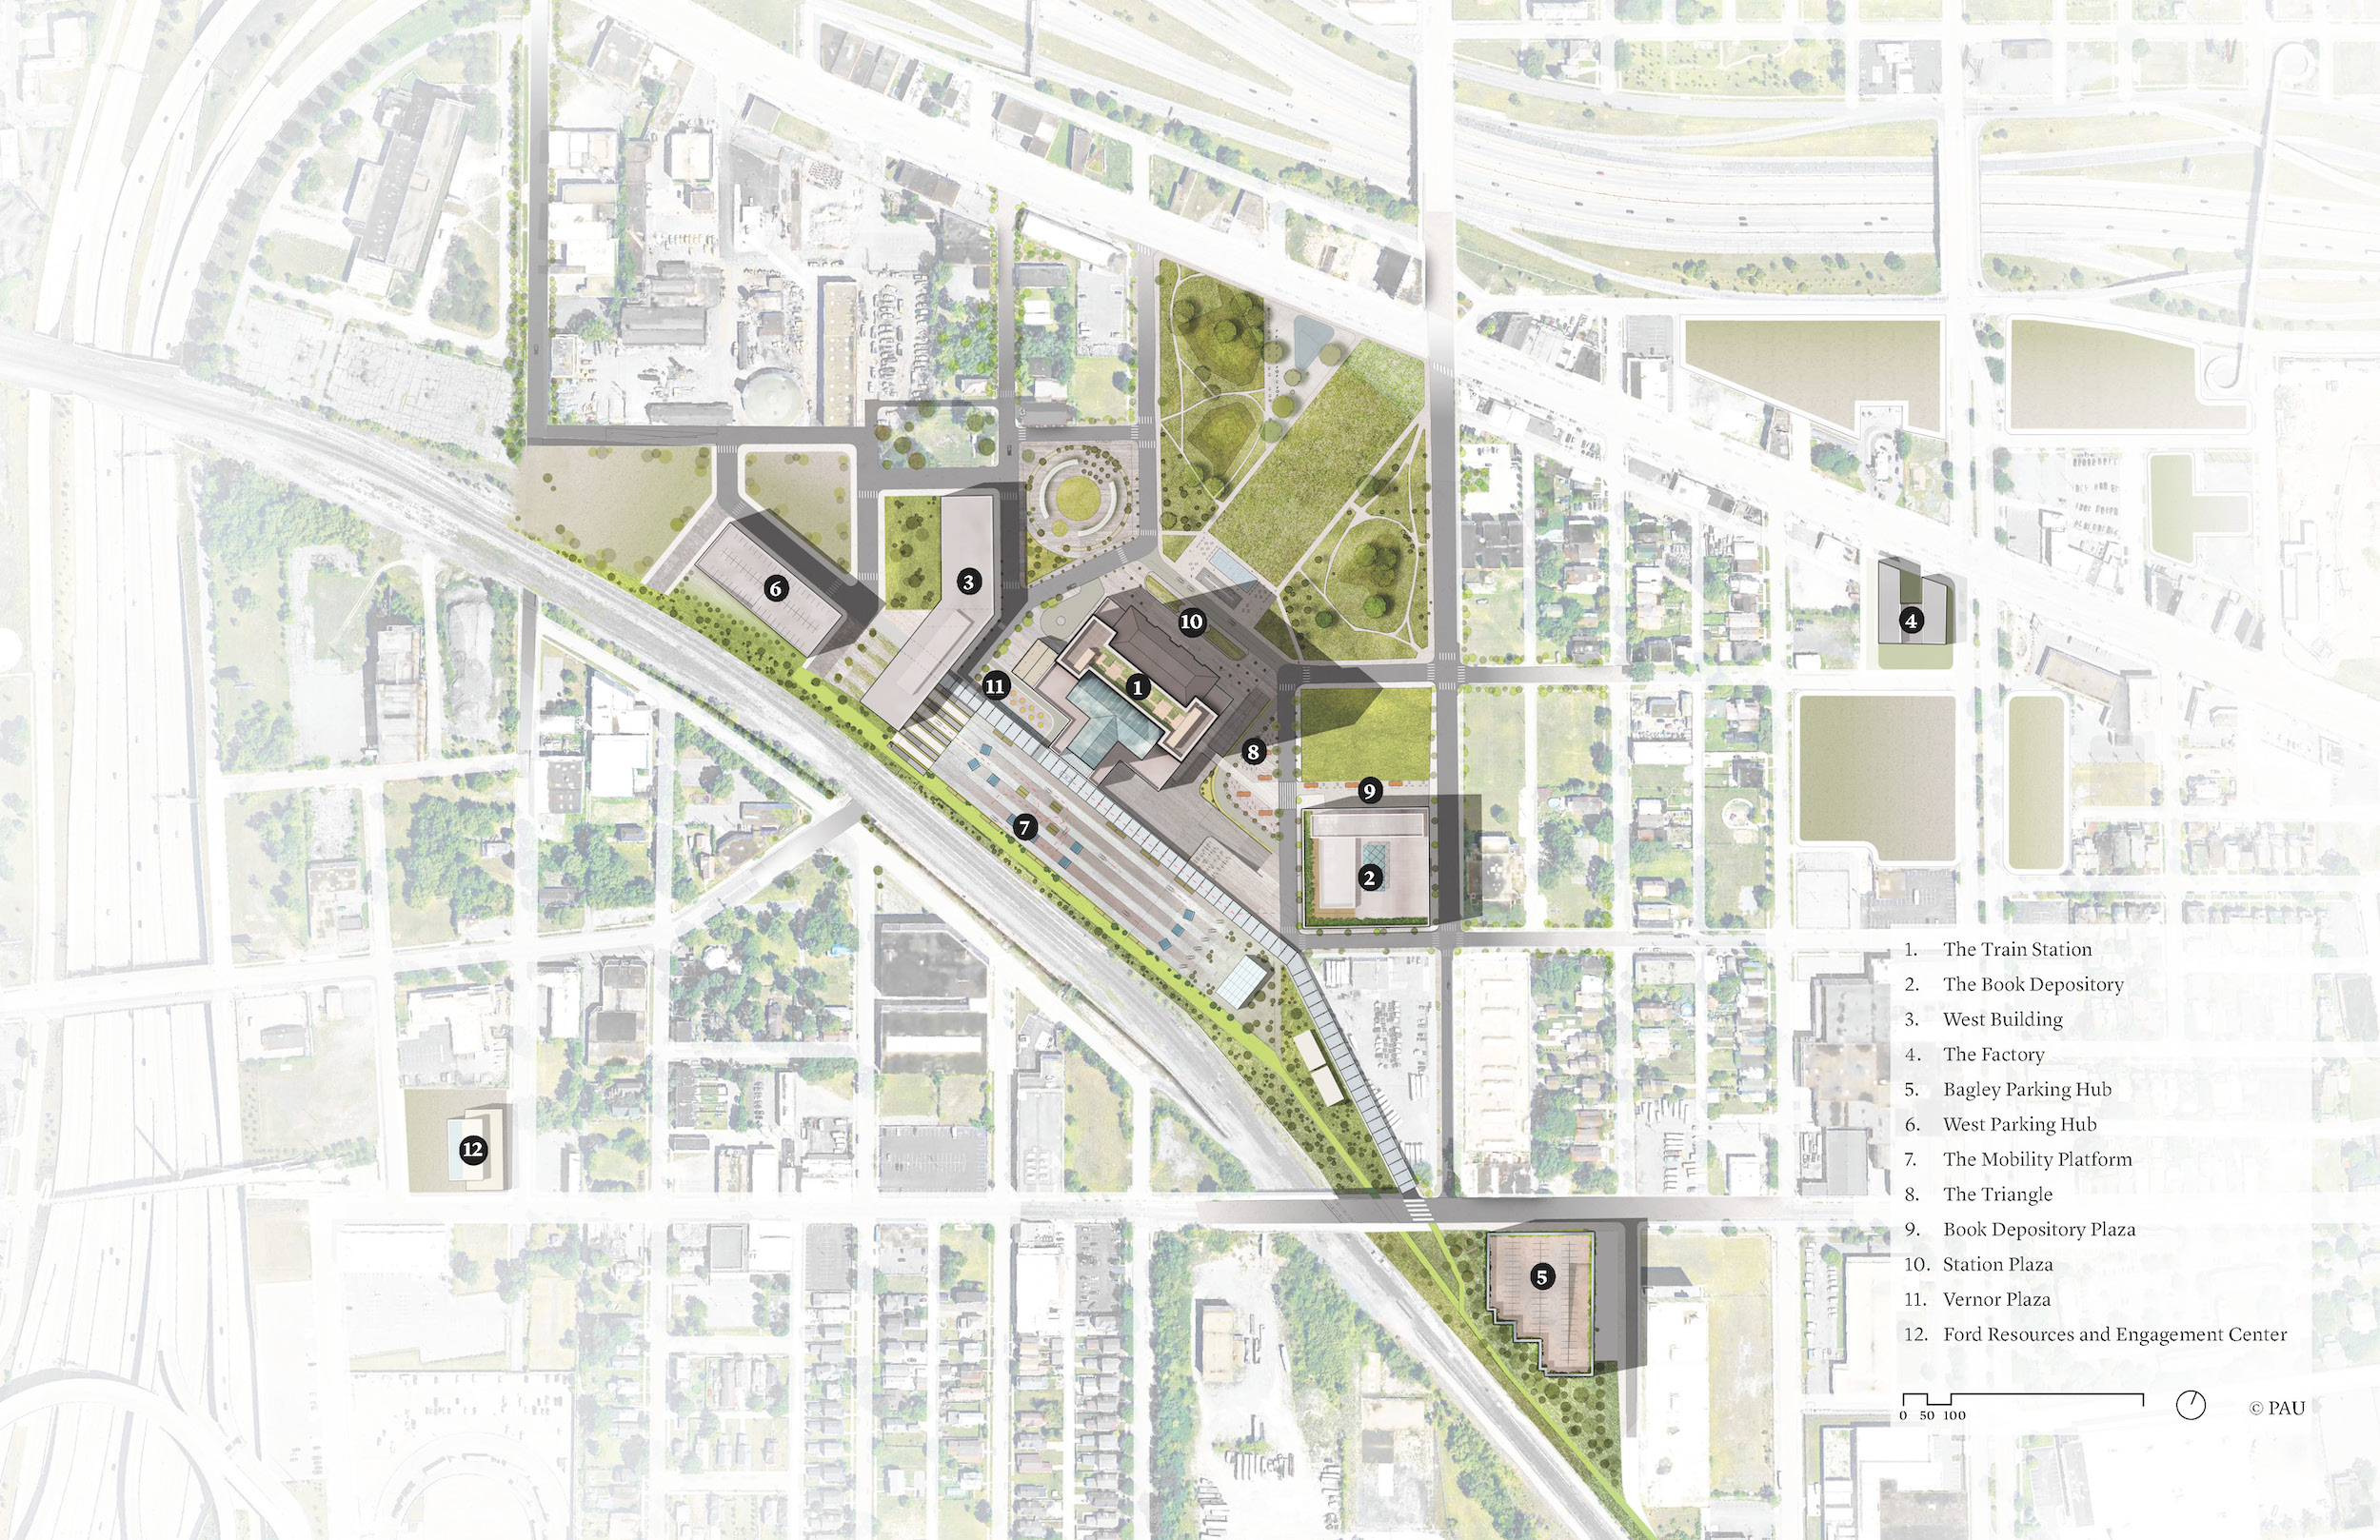 Draft of a site plan for a redevelopment zone in Detroit